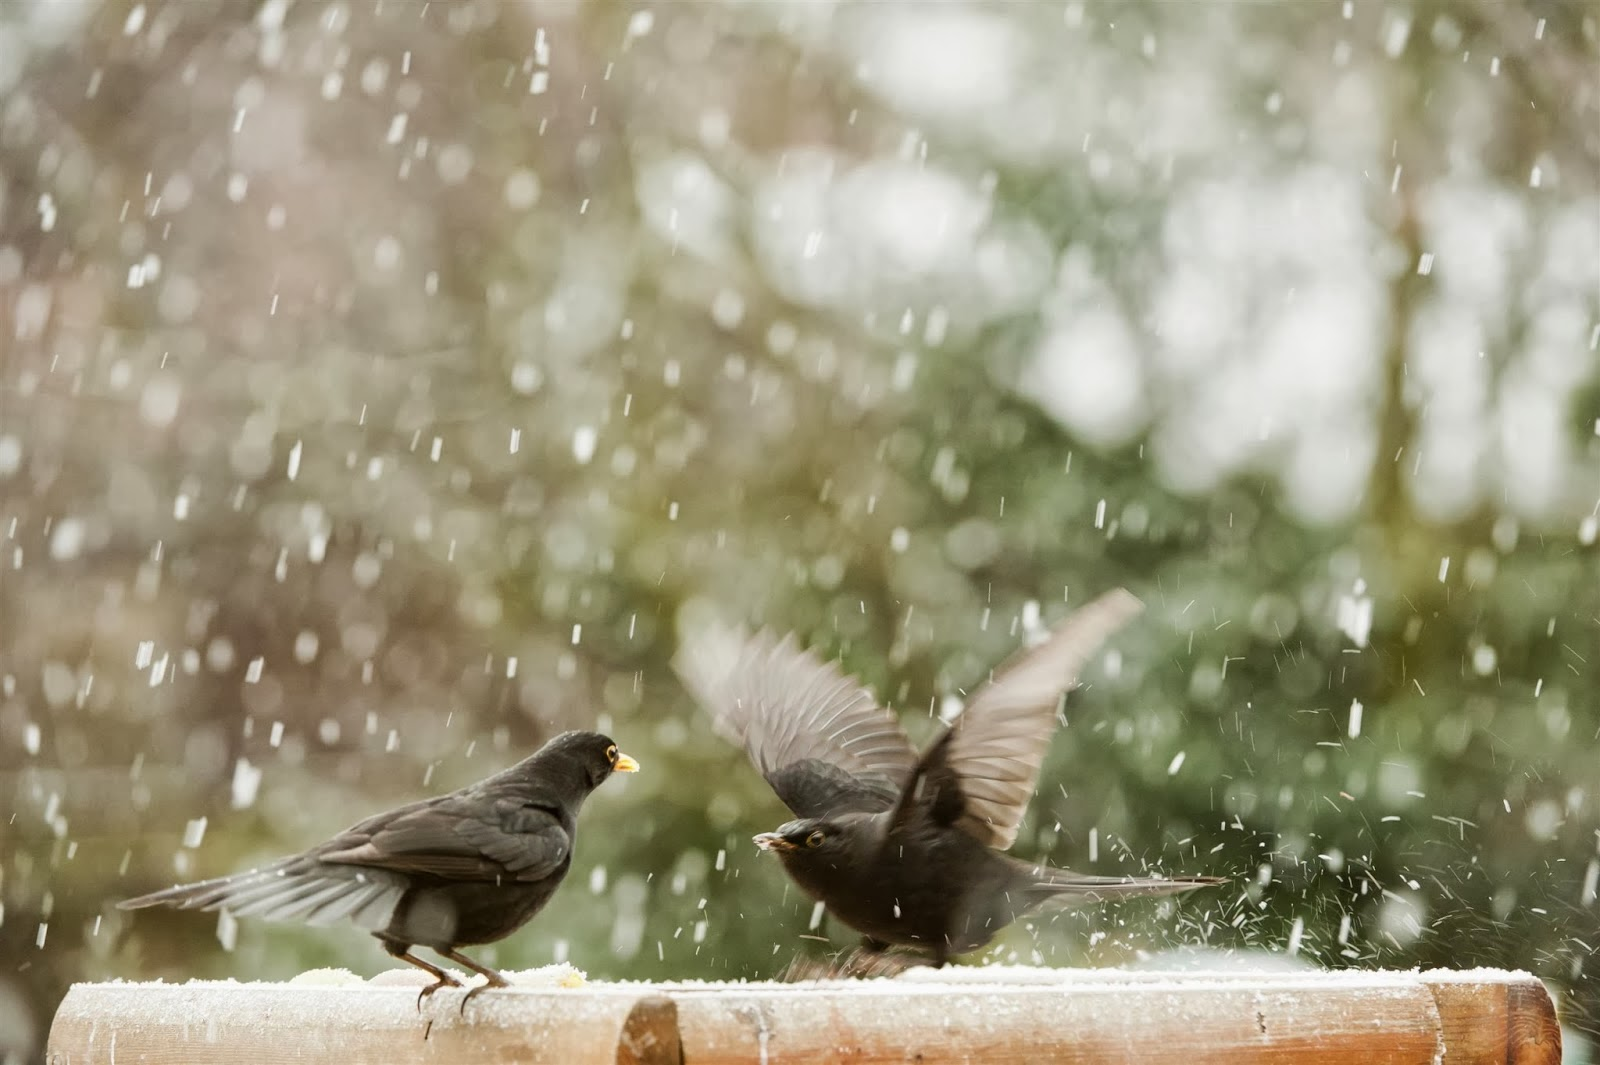 RSPB Photography Blackbirds Eating Seed